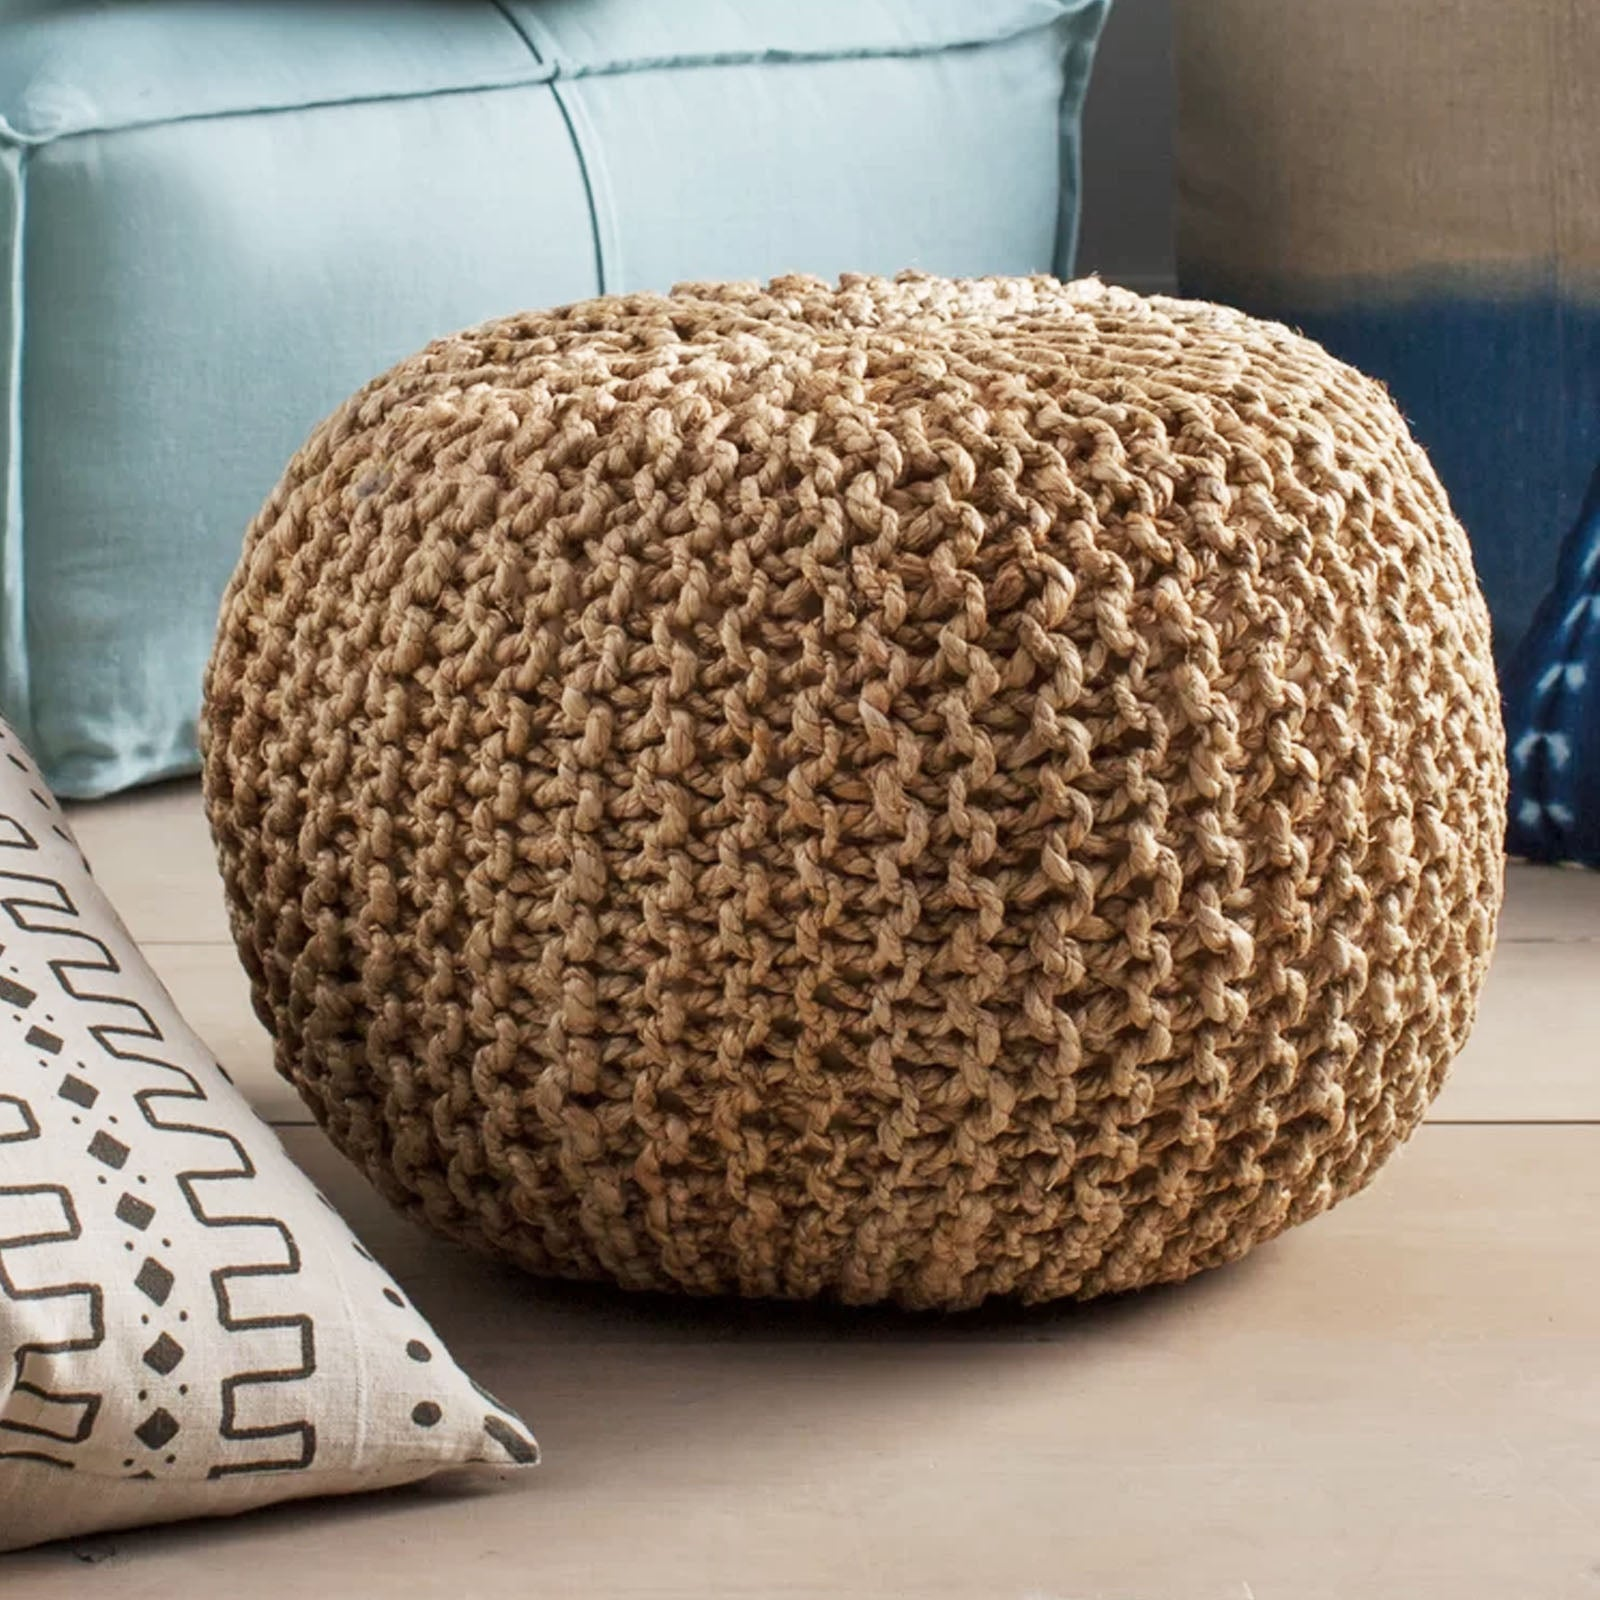 handmade jute pouf Pouf morocco Jute Dori -  وسادة الجوت اليدوية بوف المغرب - Shop Online Furniture and Home Decor Store in Dubai, UAE at ebarza